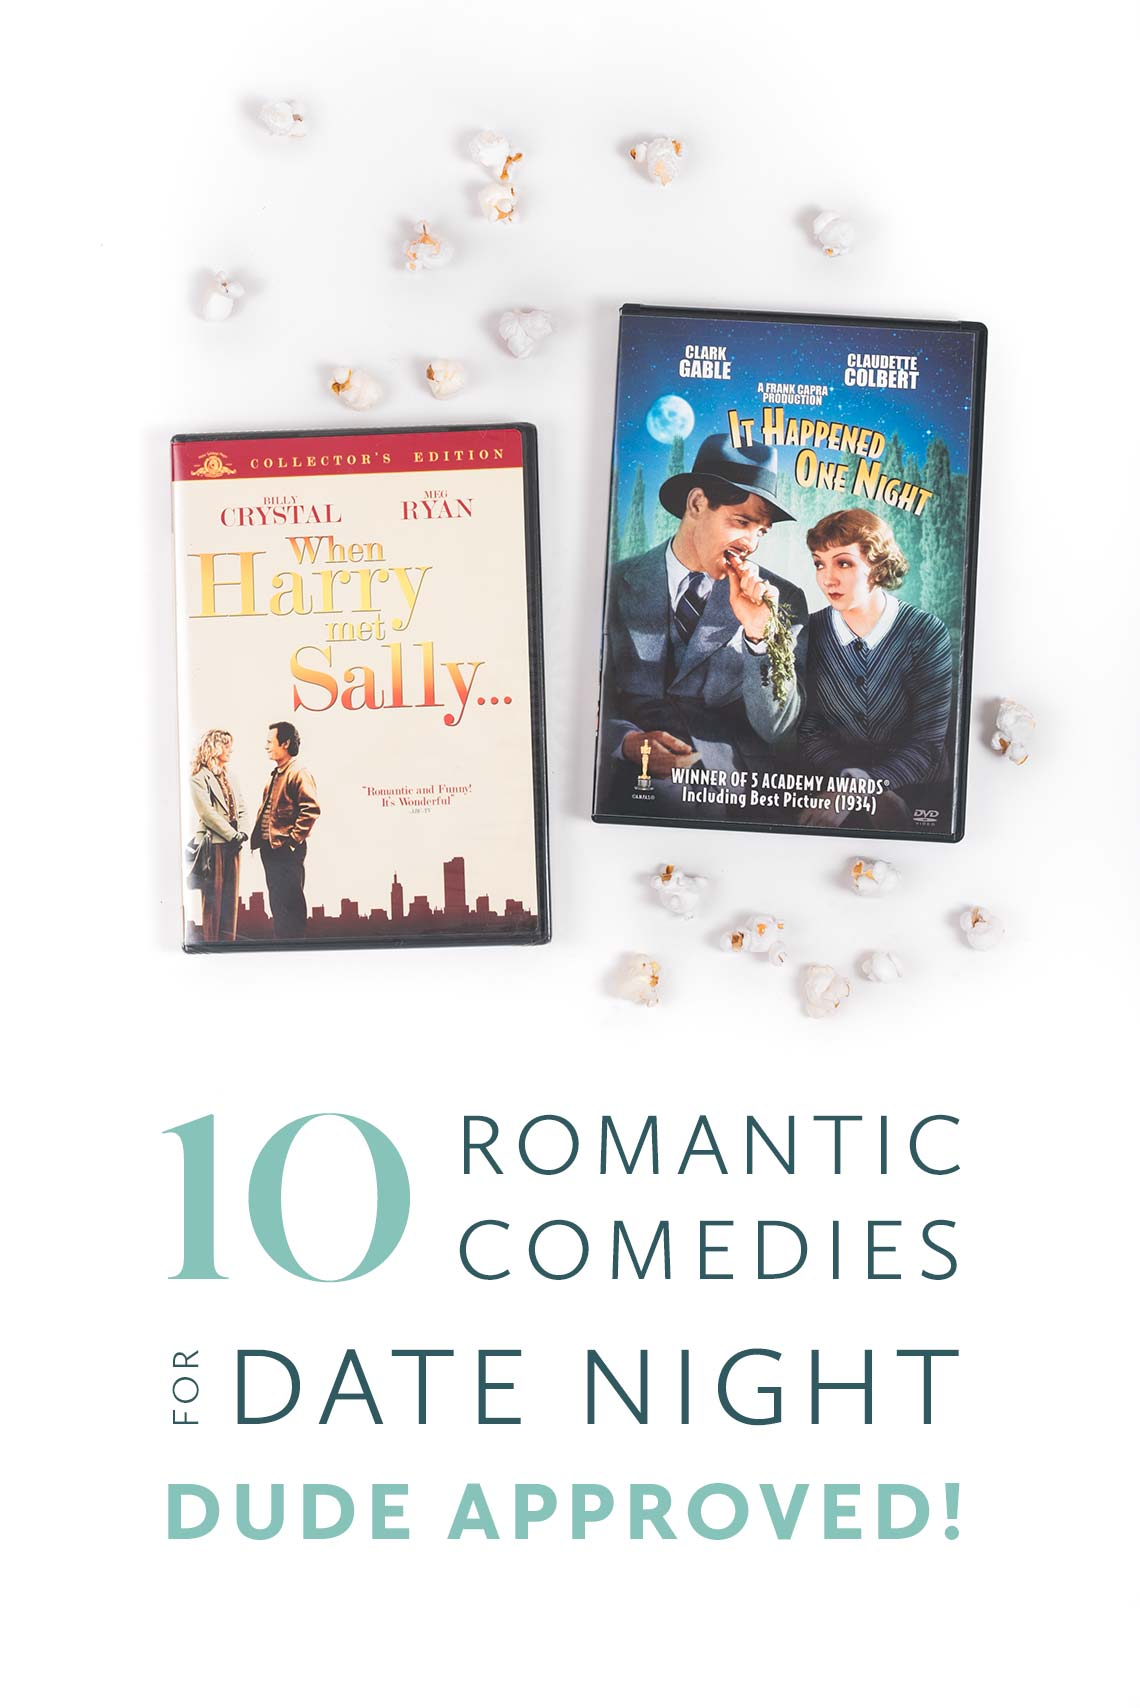 Top 10 Romantic Comedies for Date Night (Dude Approved)